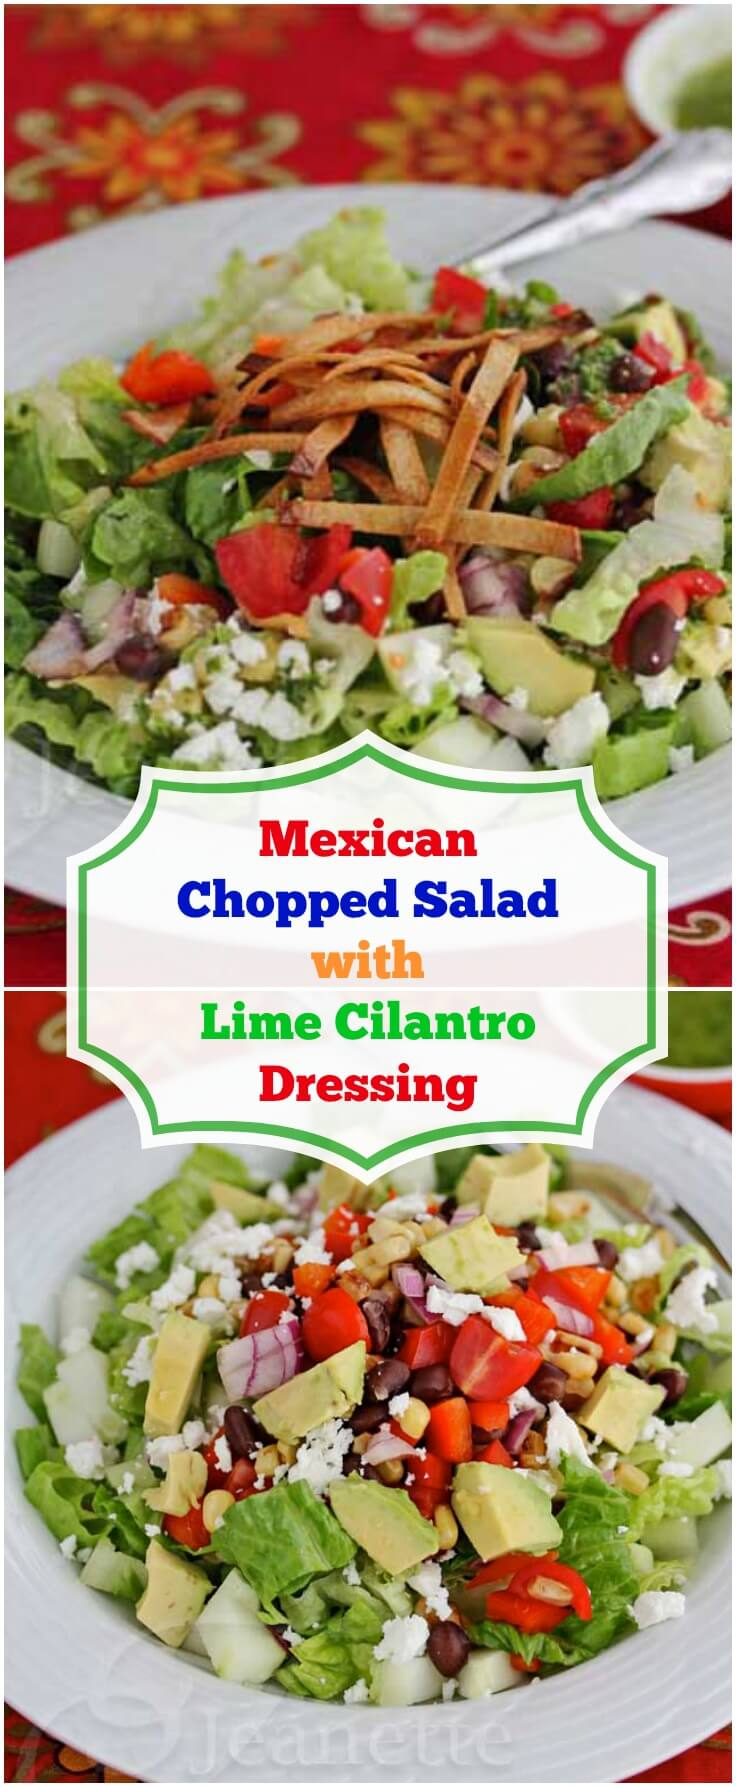 Mexican Chopped Salad with Lime Cilantro Dressing - great for barbecues and summer entertaining